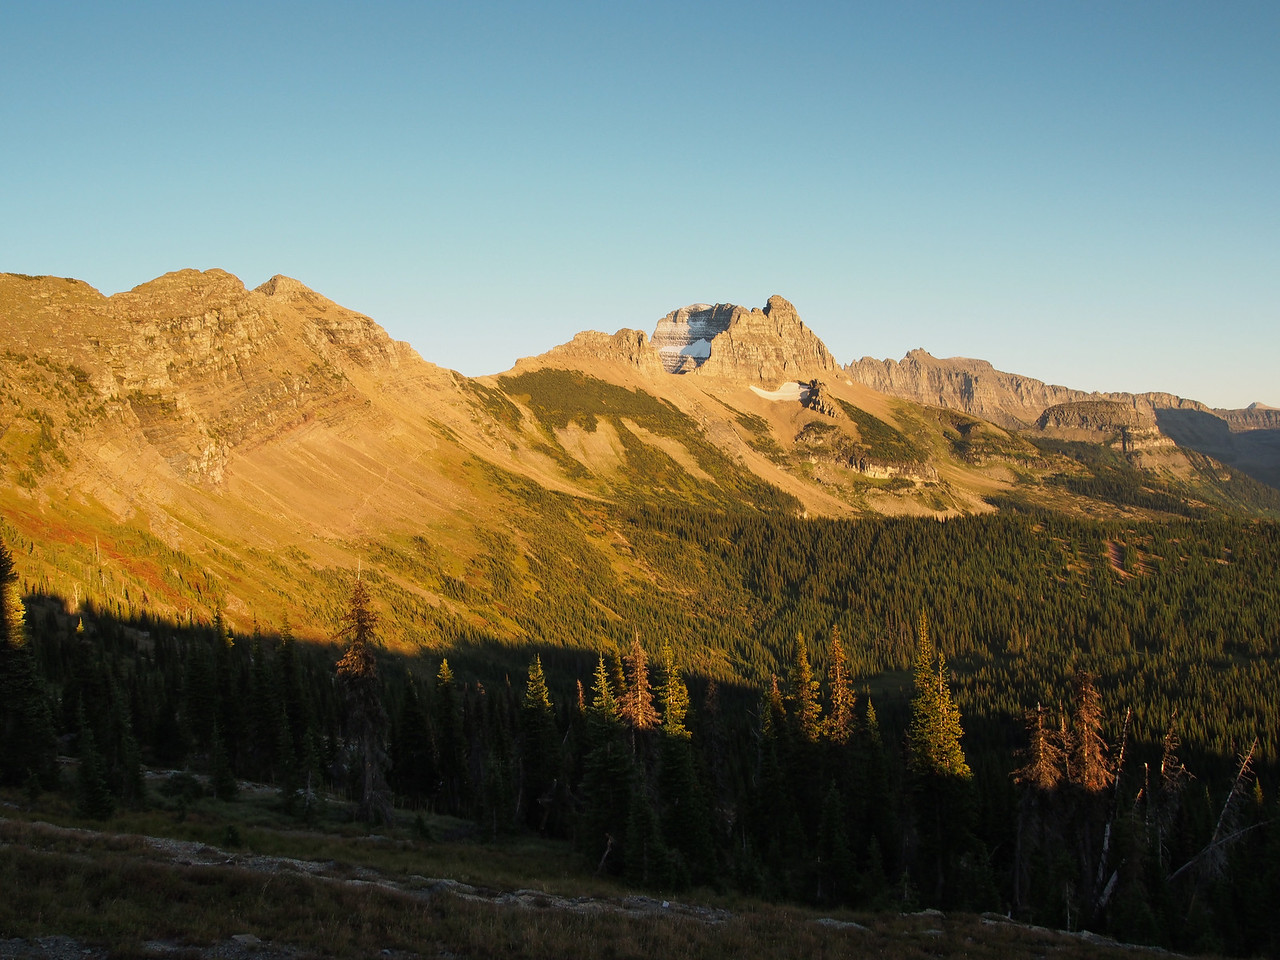 Day 4/5 - Garden Wall at sunset from Granite Chalet, Glacier NP